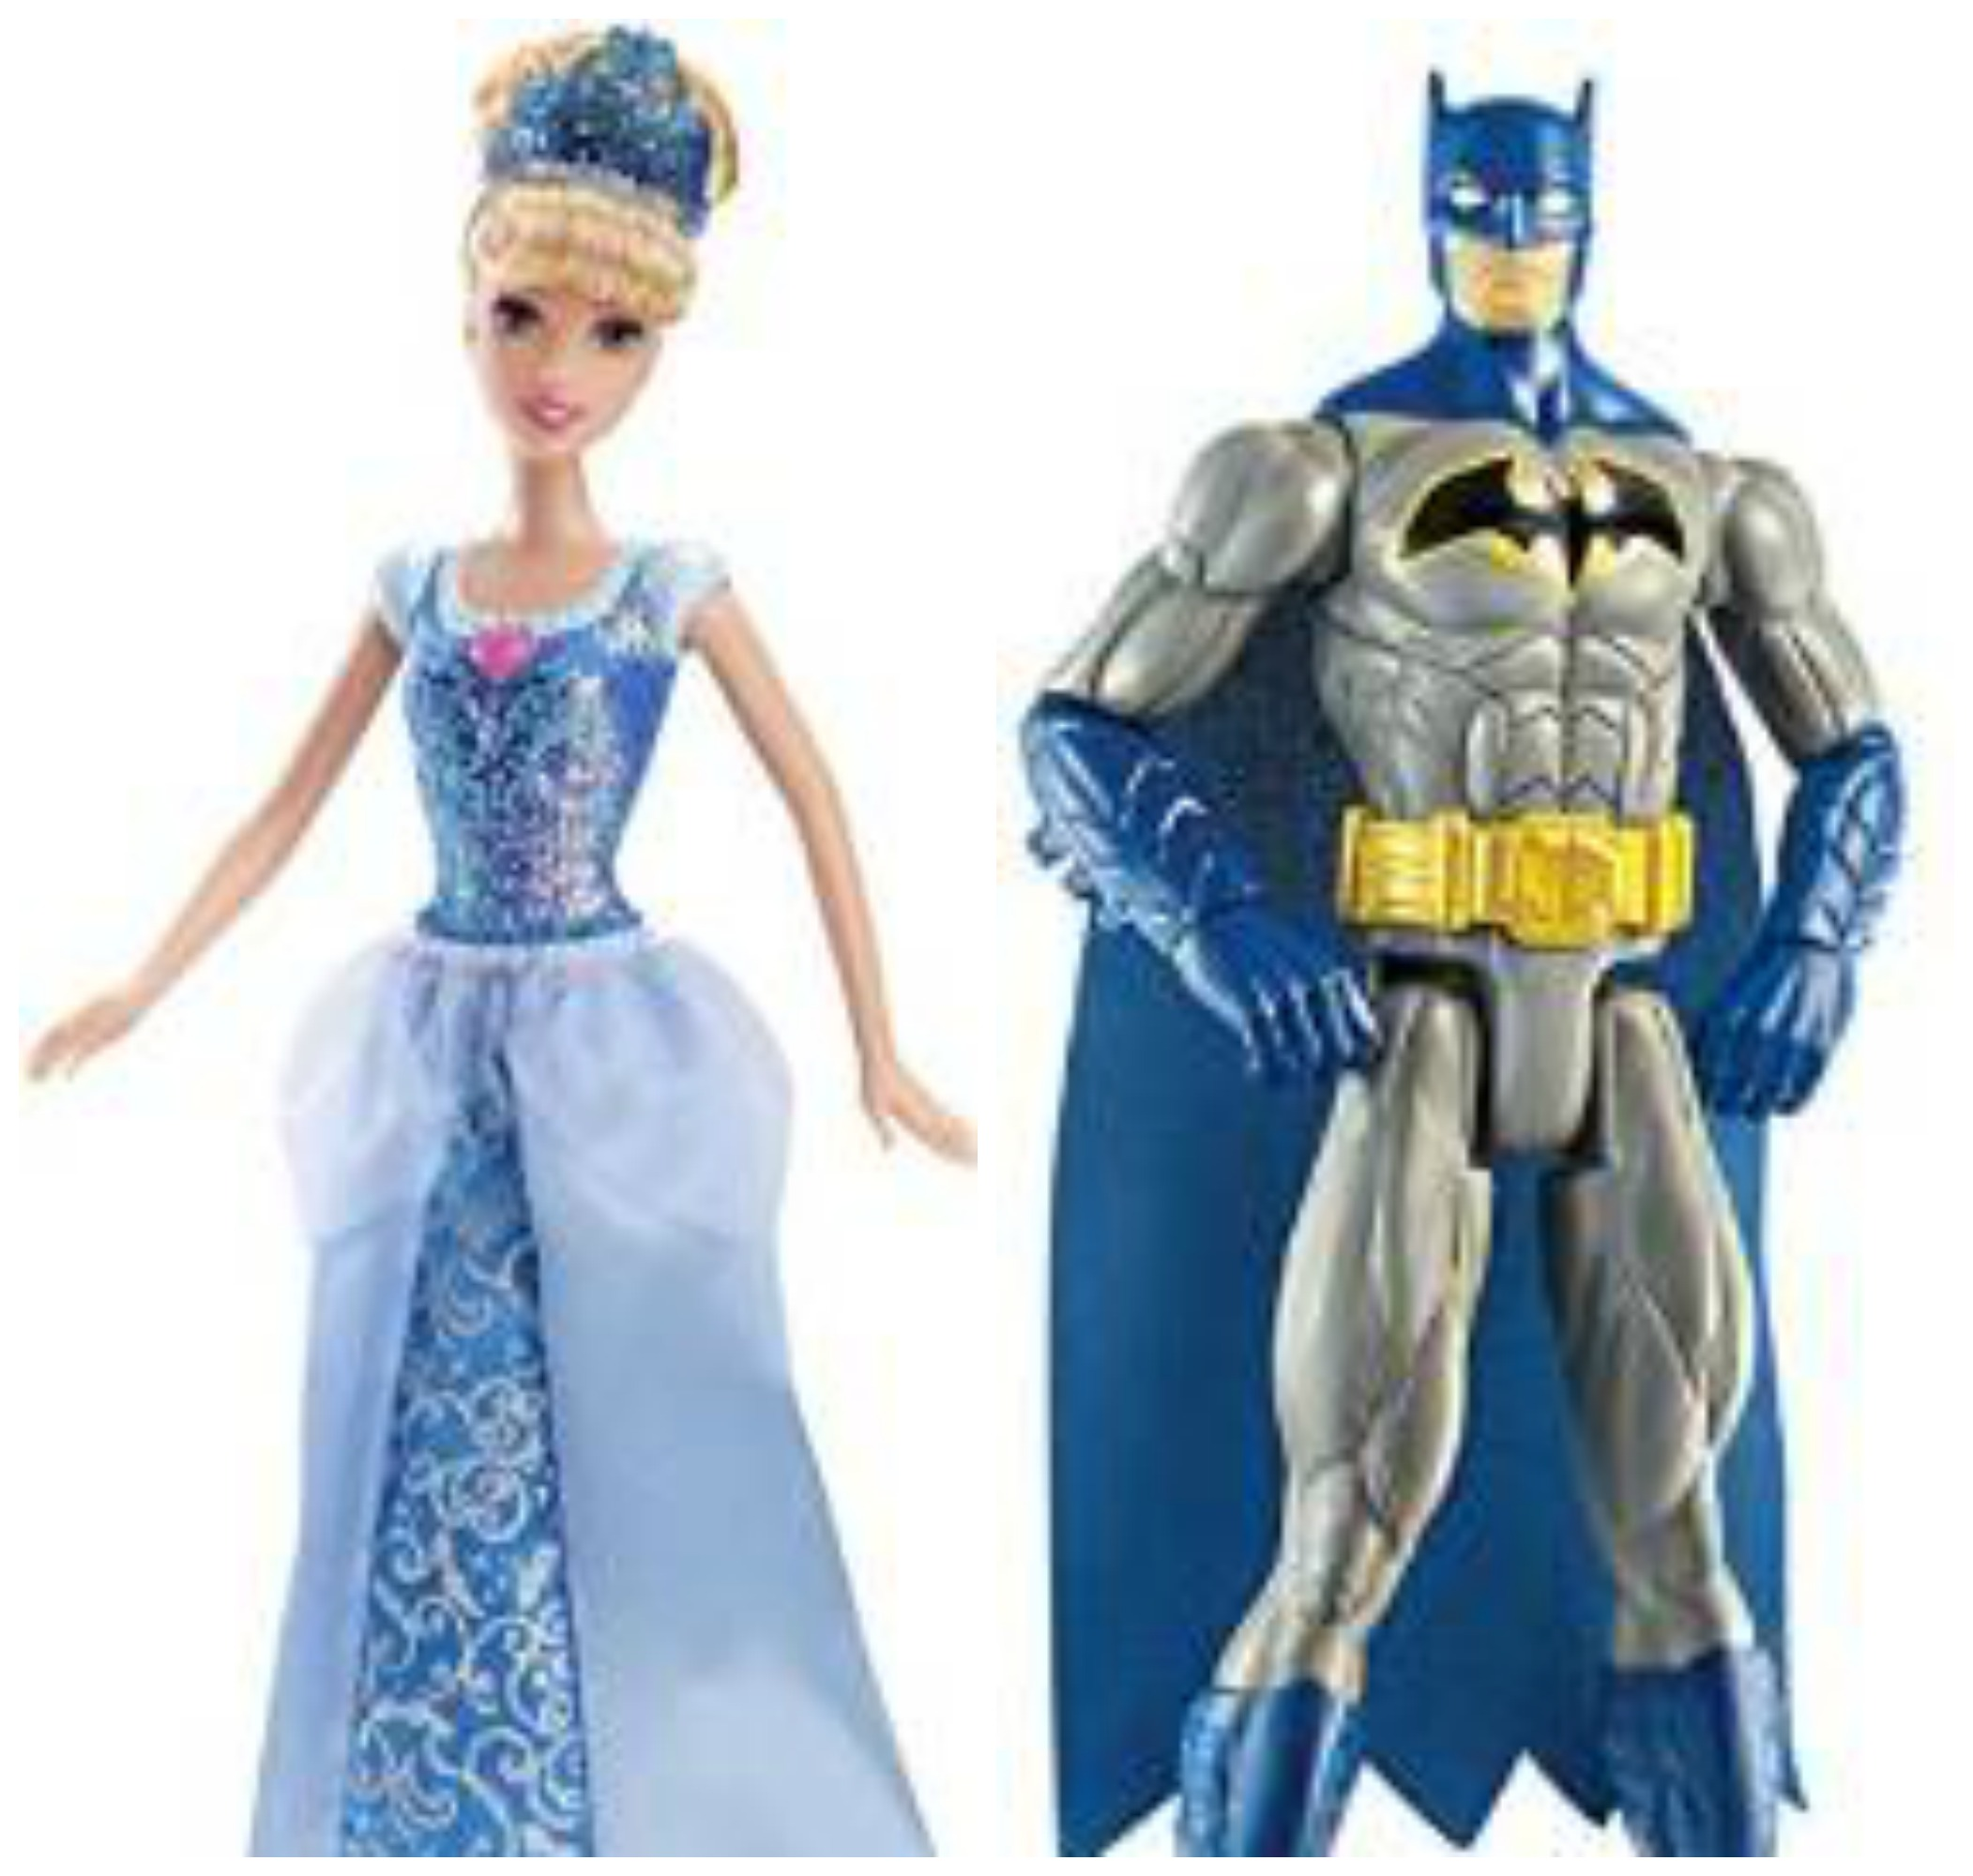 Cinderella and Batman dolls